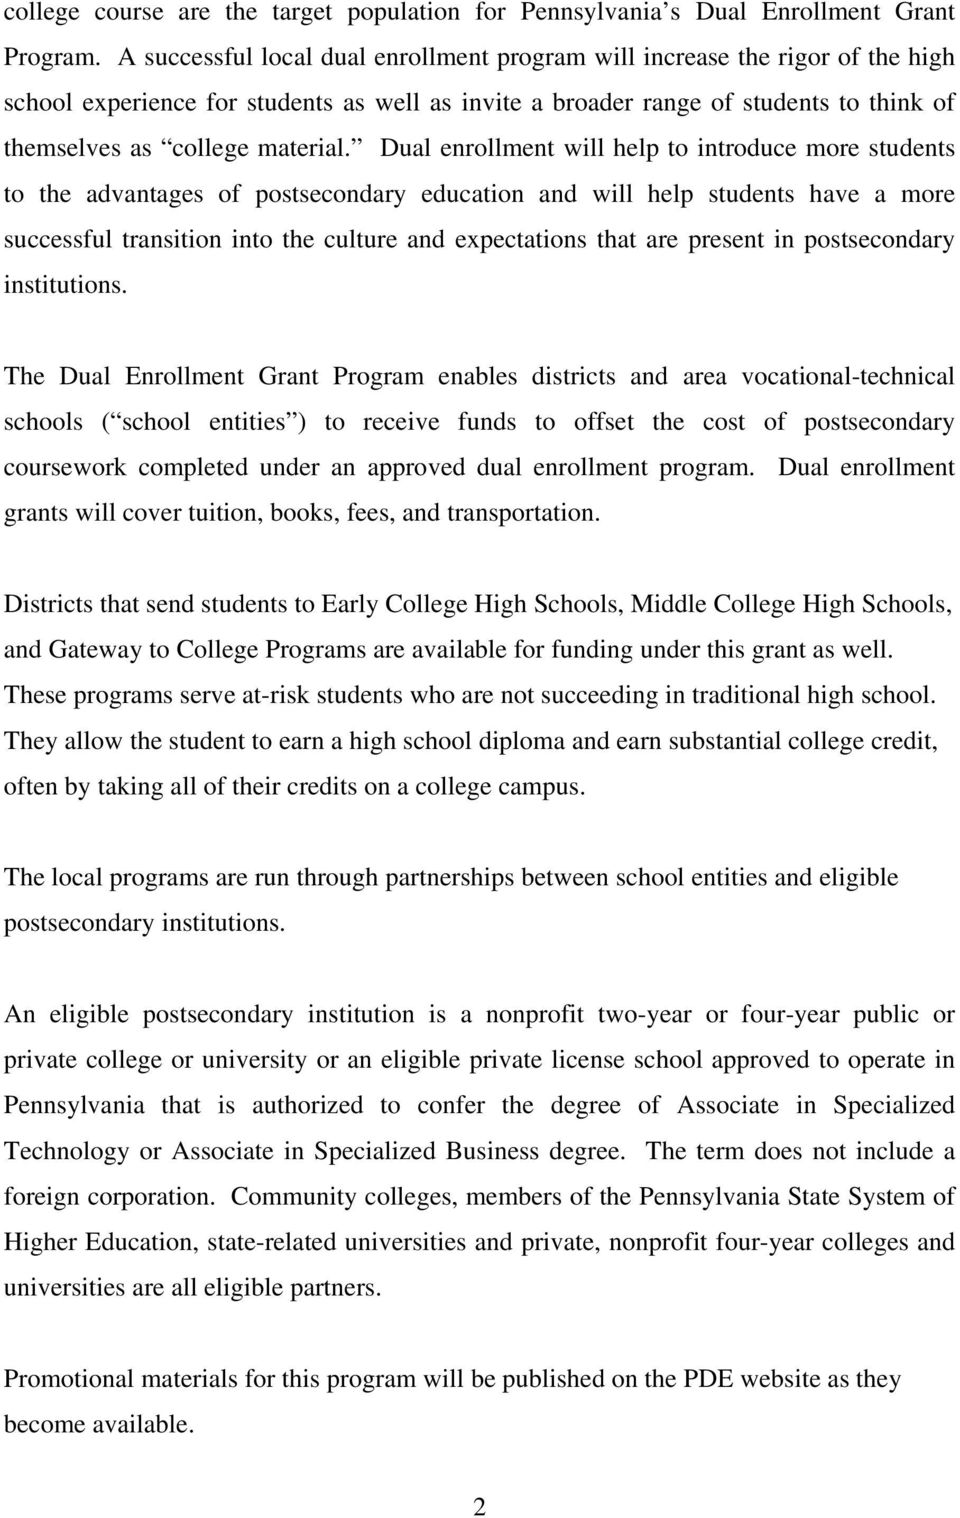 Dual enrollment will help to introduce more students to the advantages of postsecondary education and will help students have a more successful transition into the culture and expectations that are